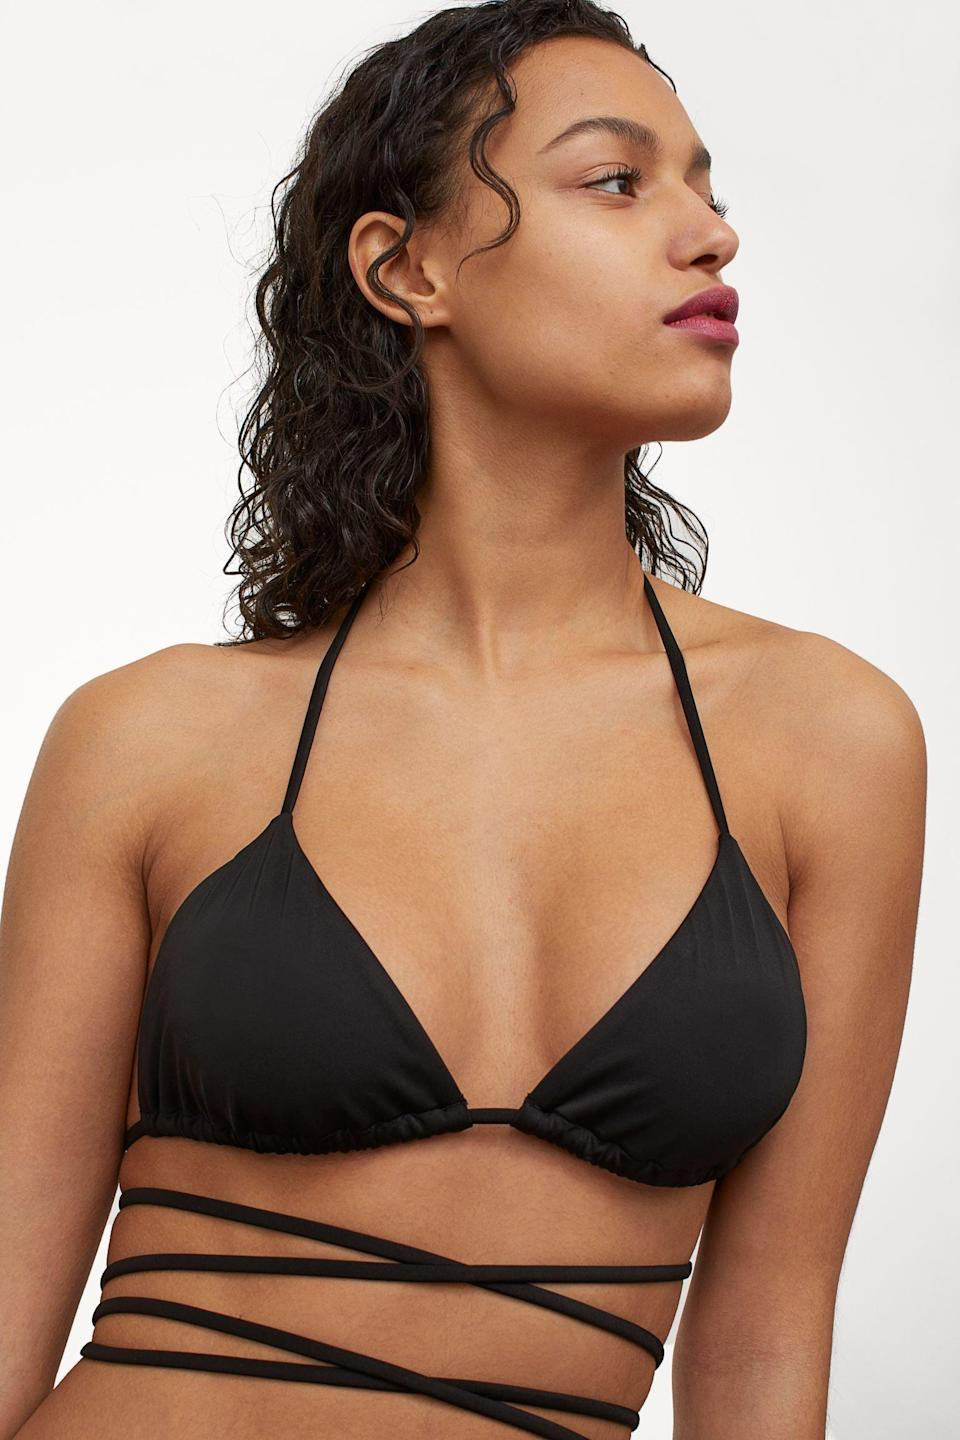 <p>This <span>Triangle Bikini Top</span> ($10) is edgy, sexy, and a surefire way to make a splash. It couldn't have a hotter match than these <span>Brazilian Bikini Bottoms</span> ($10).</p>